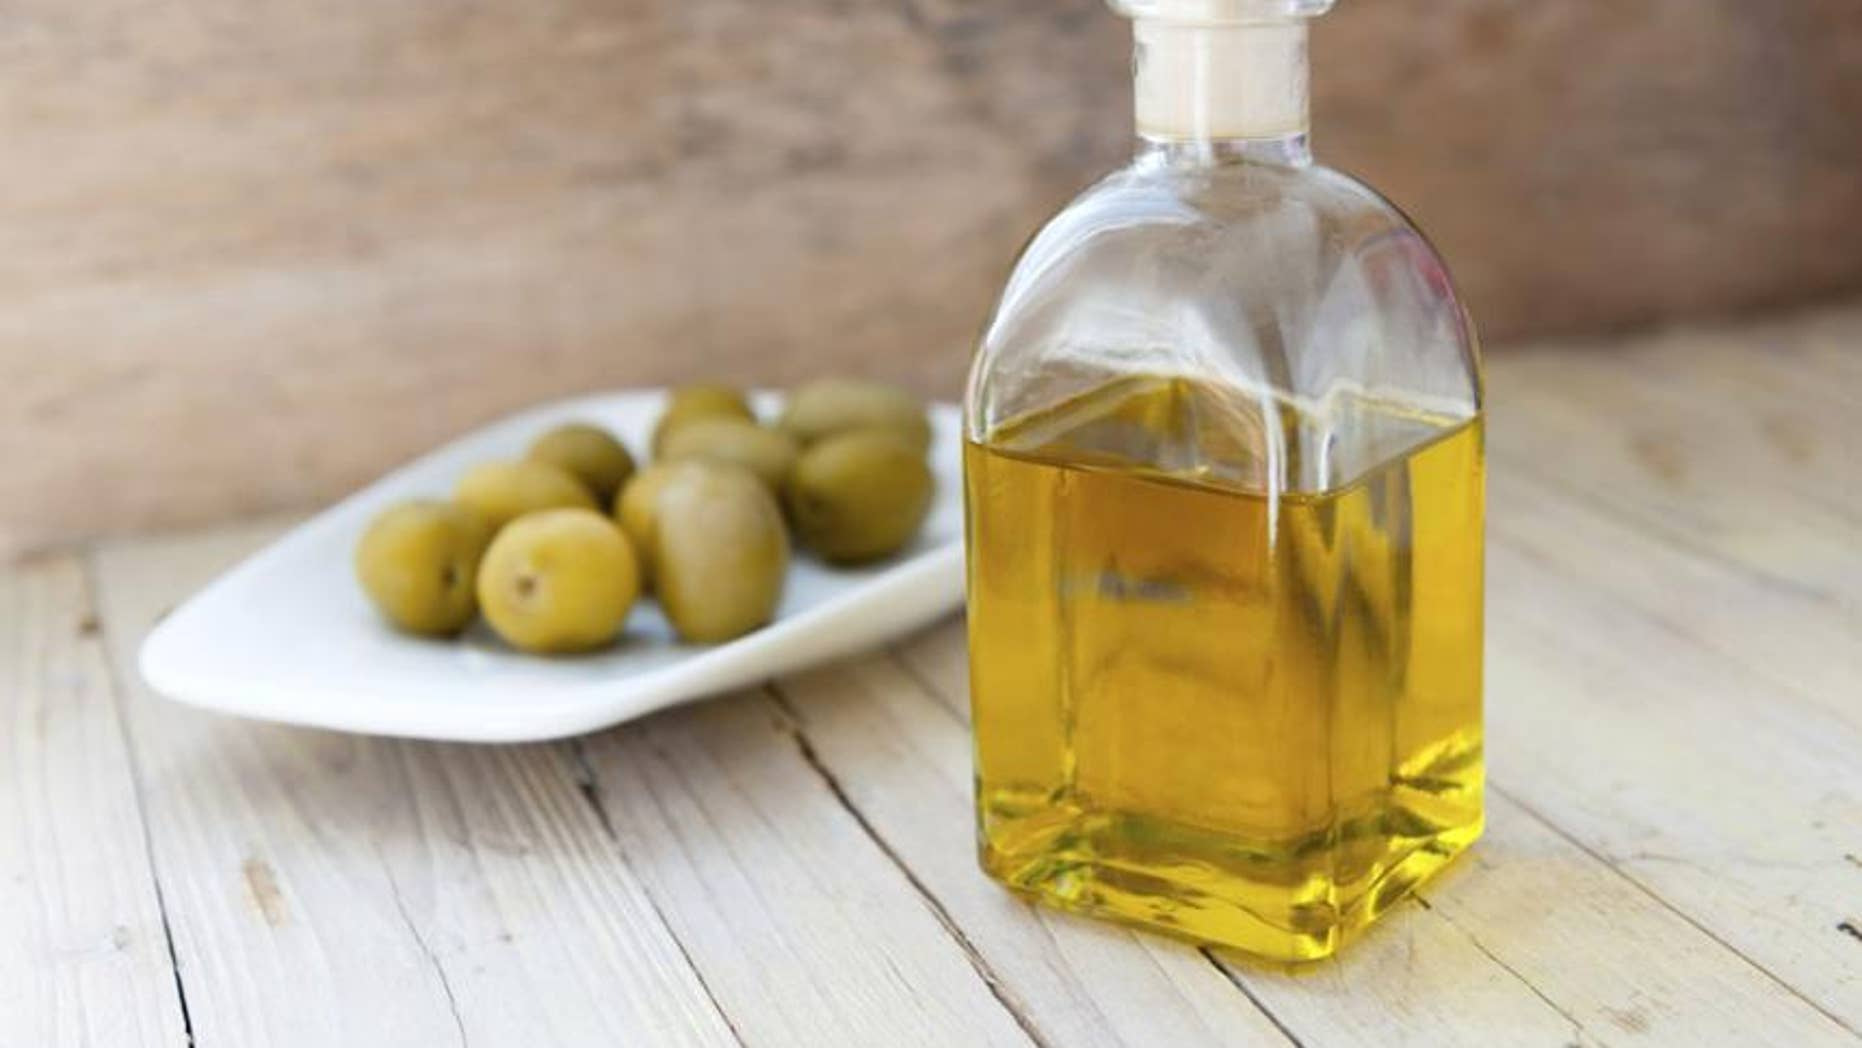 The%20holy%20grail%20of%20monounsaturated%20fat%2C%20EVOO%2C%20is%20literally%20brimming%20with%20health%20boosters%20(and%20that's%20apart%20from%20minimizing%20your%20gut)%2C%20including%20anti-inflammatory%20properties%2C%20cardiovascular%20benefits%2C%20brain-boosting%20benefits%2C%20and%20many%20others.%20Opt%20for%20around%20two%20tablespoons%20a%20day%20%E2%80%94%20an%20easy%20feat%20if%20you%20drizzle%20it%20over%20fresh%20fish%20or%20veggies%2C%20or%20mix%20it%20with%20a%20little%20lemon%20juice%2C%20garlic%20and%20spices%20to%20create%20the%20perfect%20salad%20dressing.%20However%2C%20in%20order%20to%20reap%20the%20benefits%2C%20you%20shouldn%E2%80%99t%20cook%20or%20heat%20up%20olive%20oil%20for%20several%20reasons%2C%20including%20the%20fact%20that%20chemical%20changes%20take%20place%20in%20its%20compound%20and%20could%20be%20harmful%20to%20eat%20and%20breathe.%0A